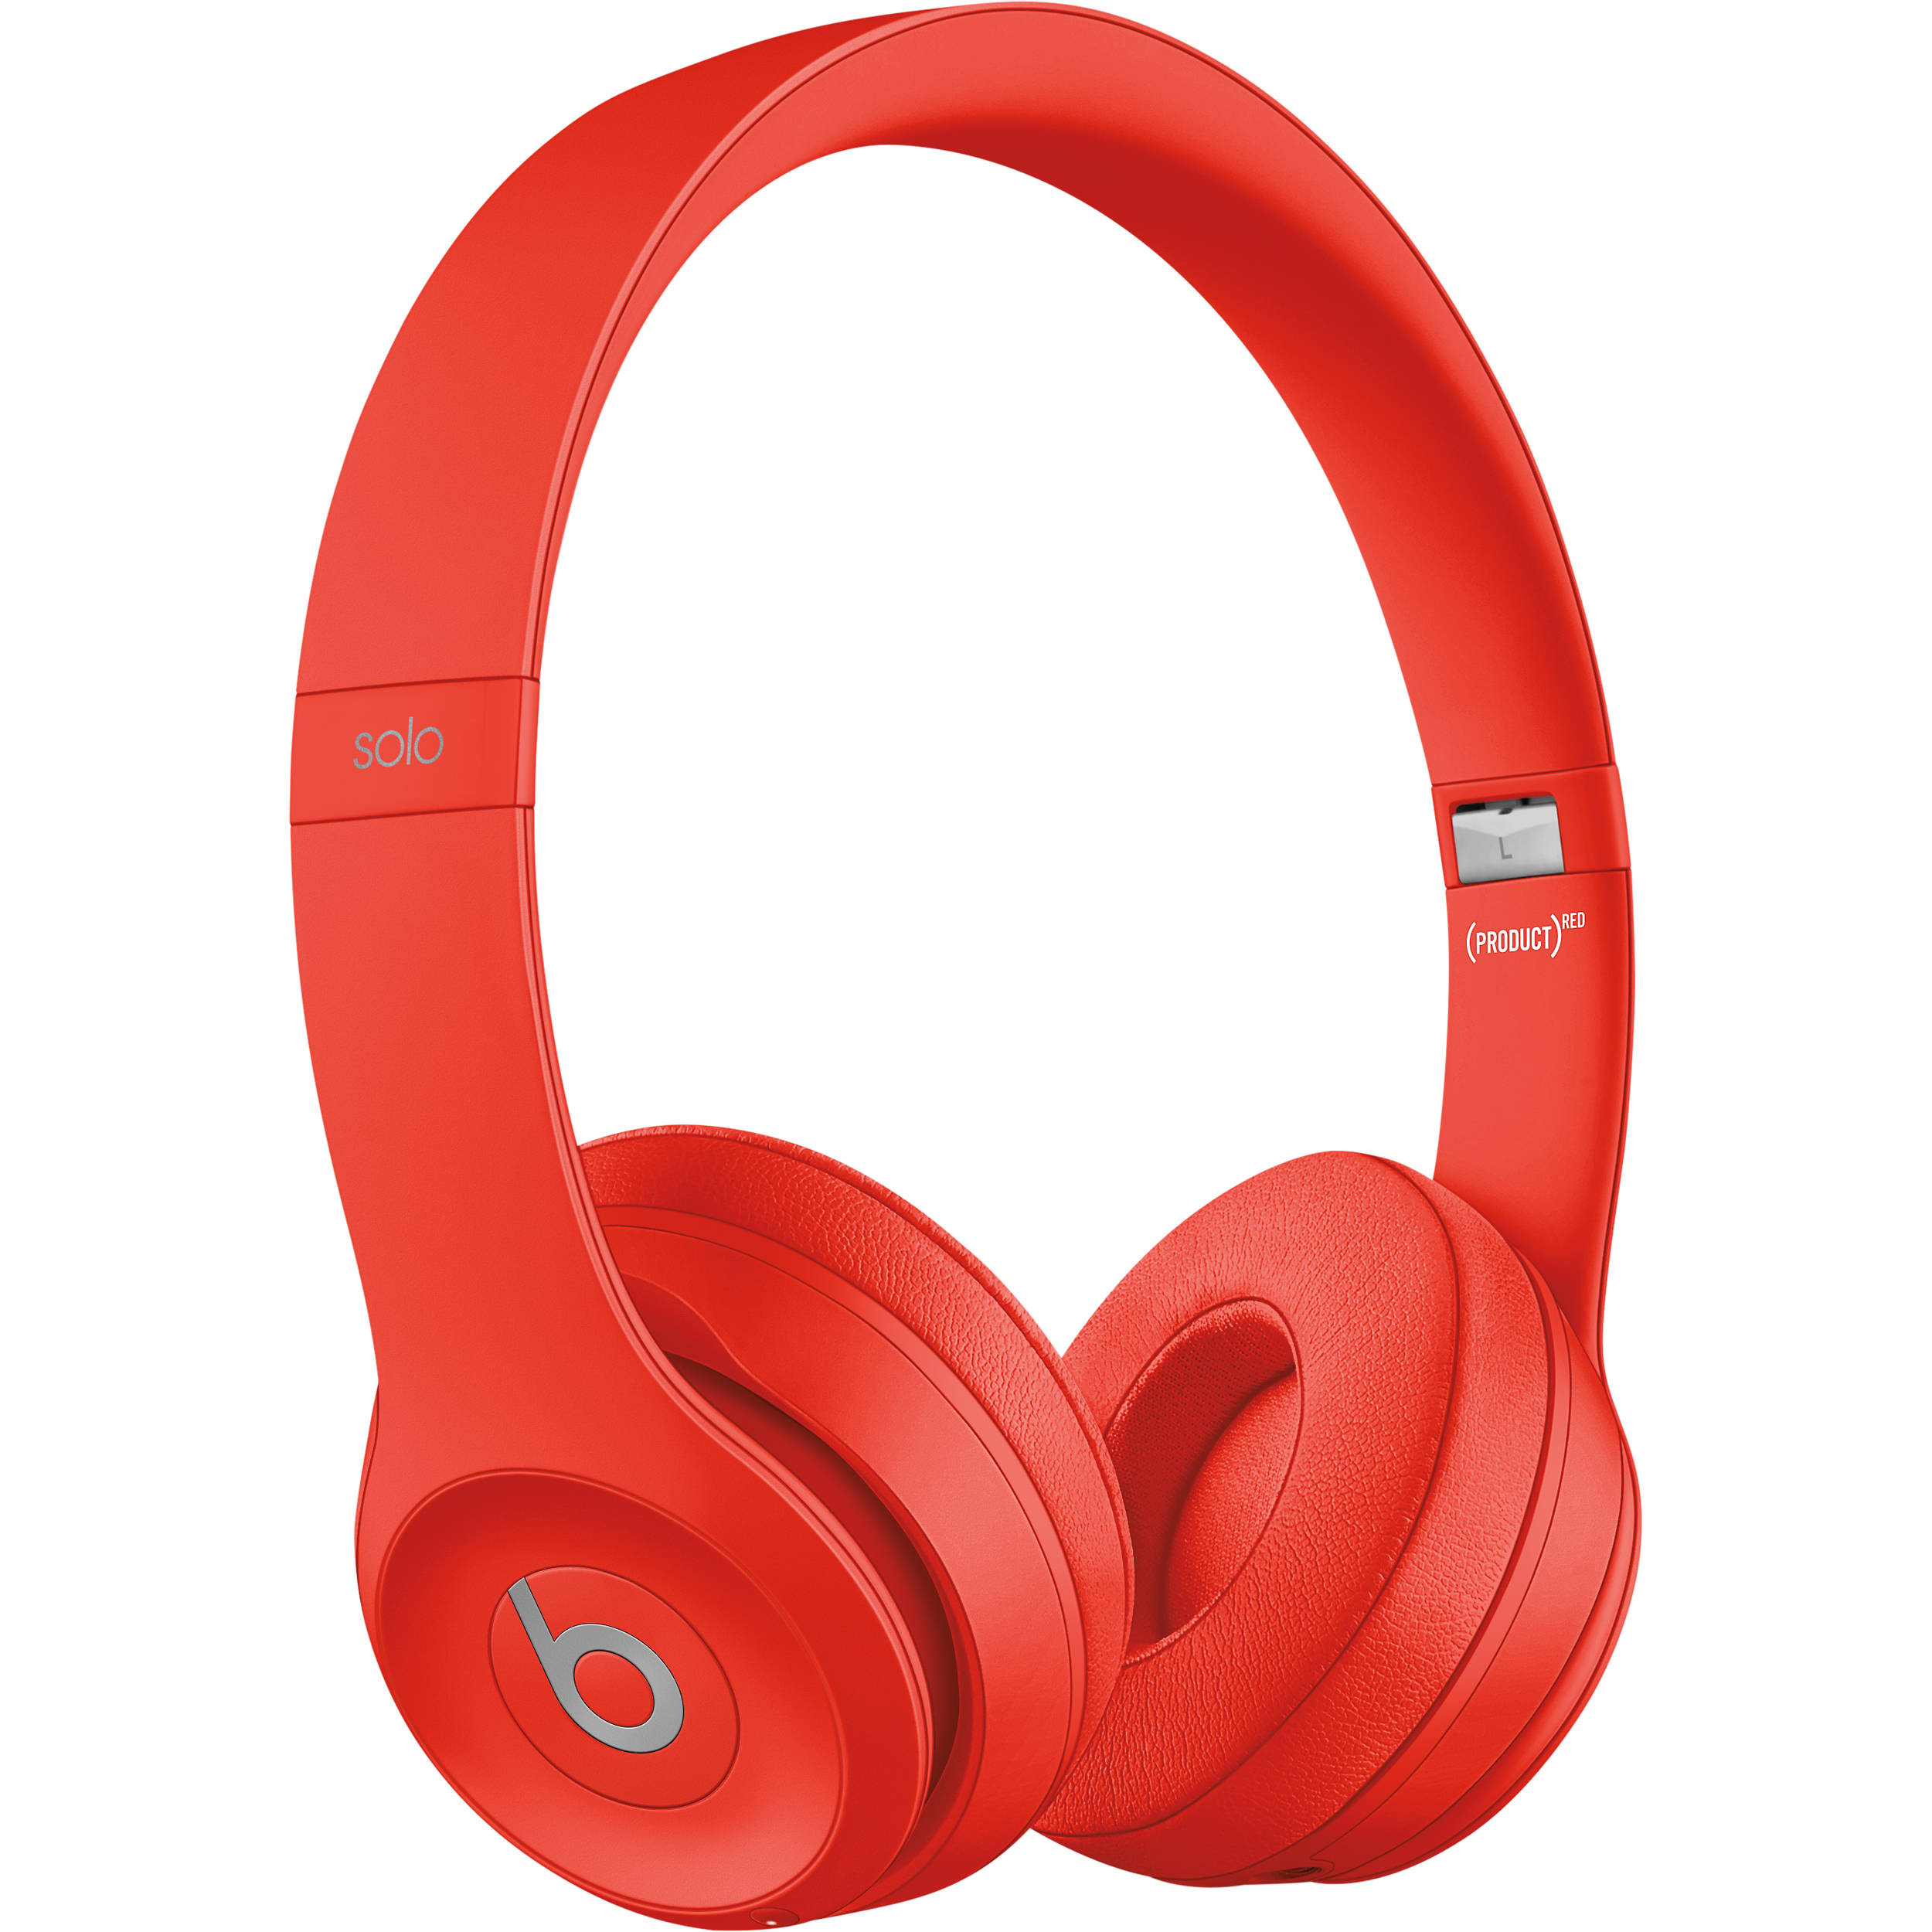 Beats by Dr. Dre Beats Solo3 Wireless On-Ear Headphones (Red nbsp   7e5a6b54034d